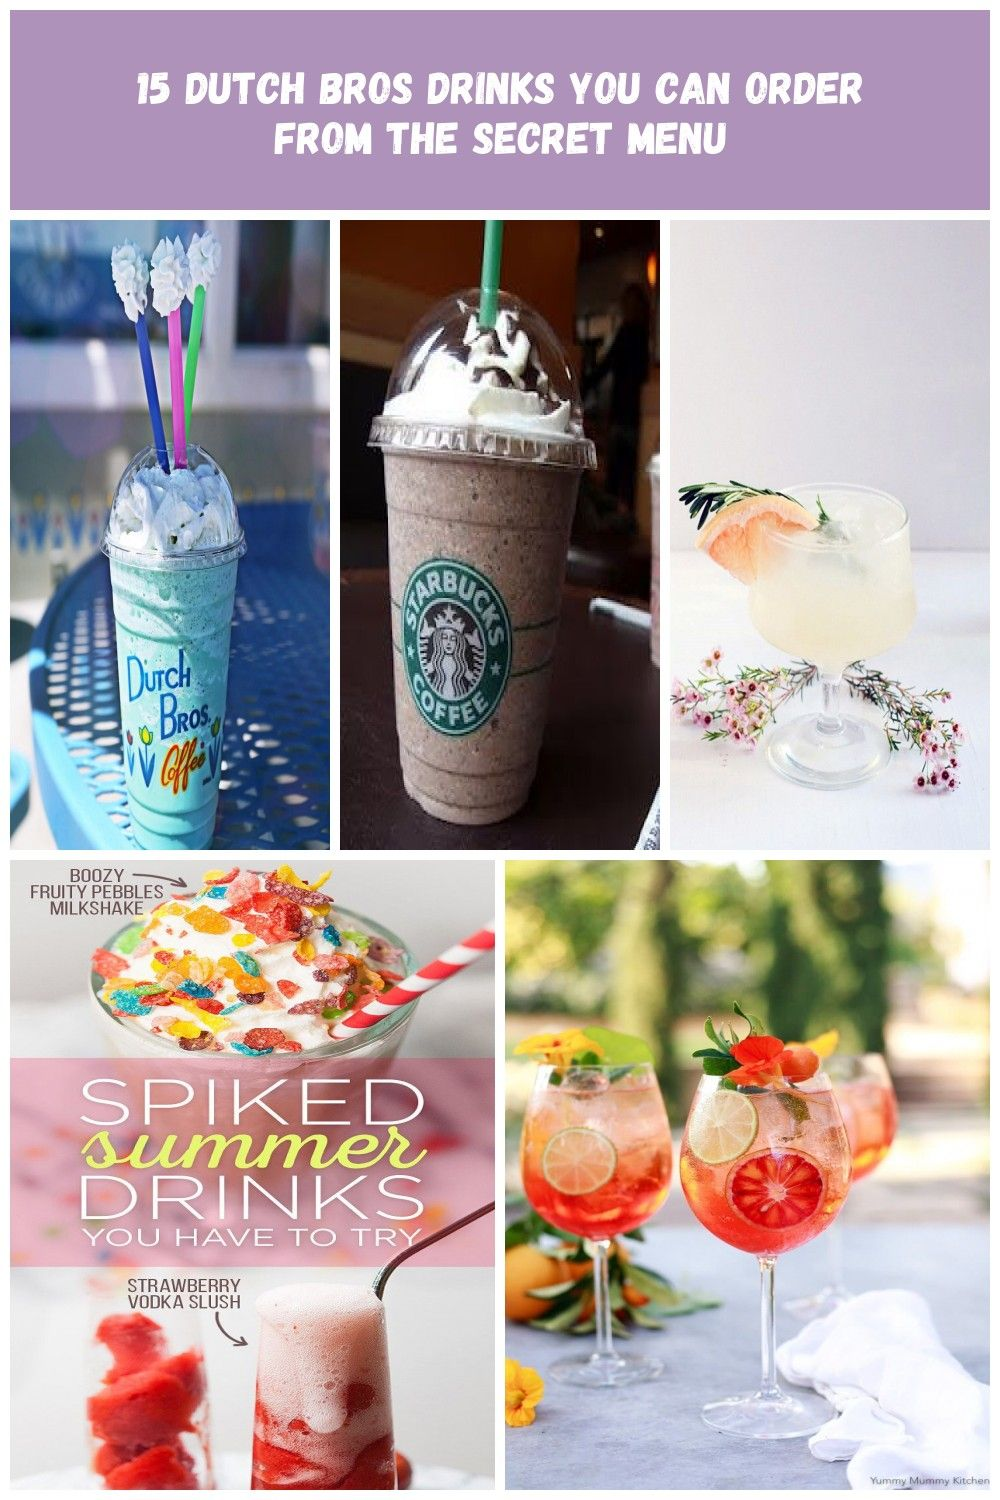 These are the best secret menu drink items to order at Dutch Bros. drink menu 15 Dutch Bros Drinks You Can Order From the Secret Menu #dutchbros